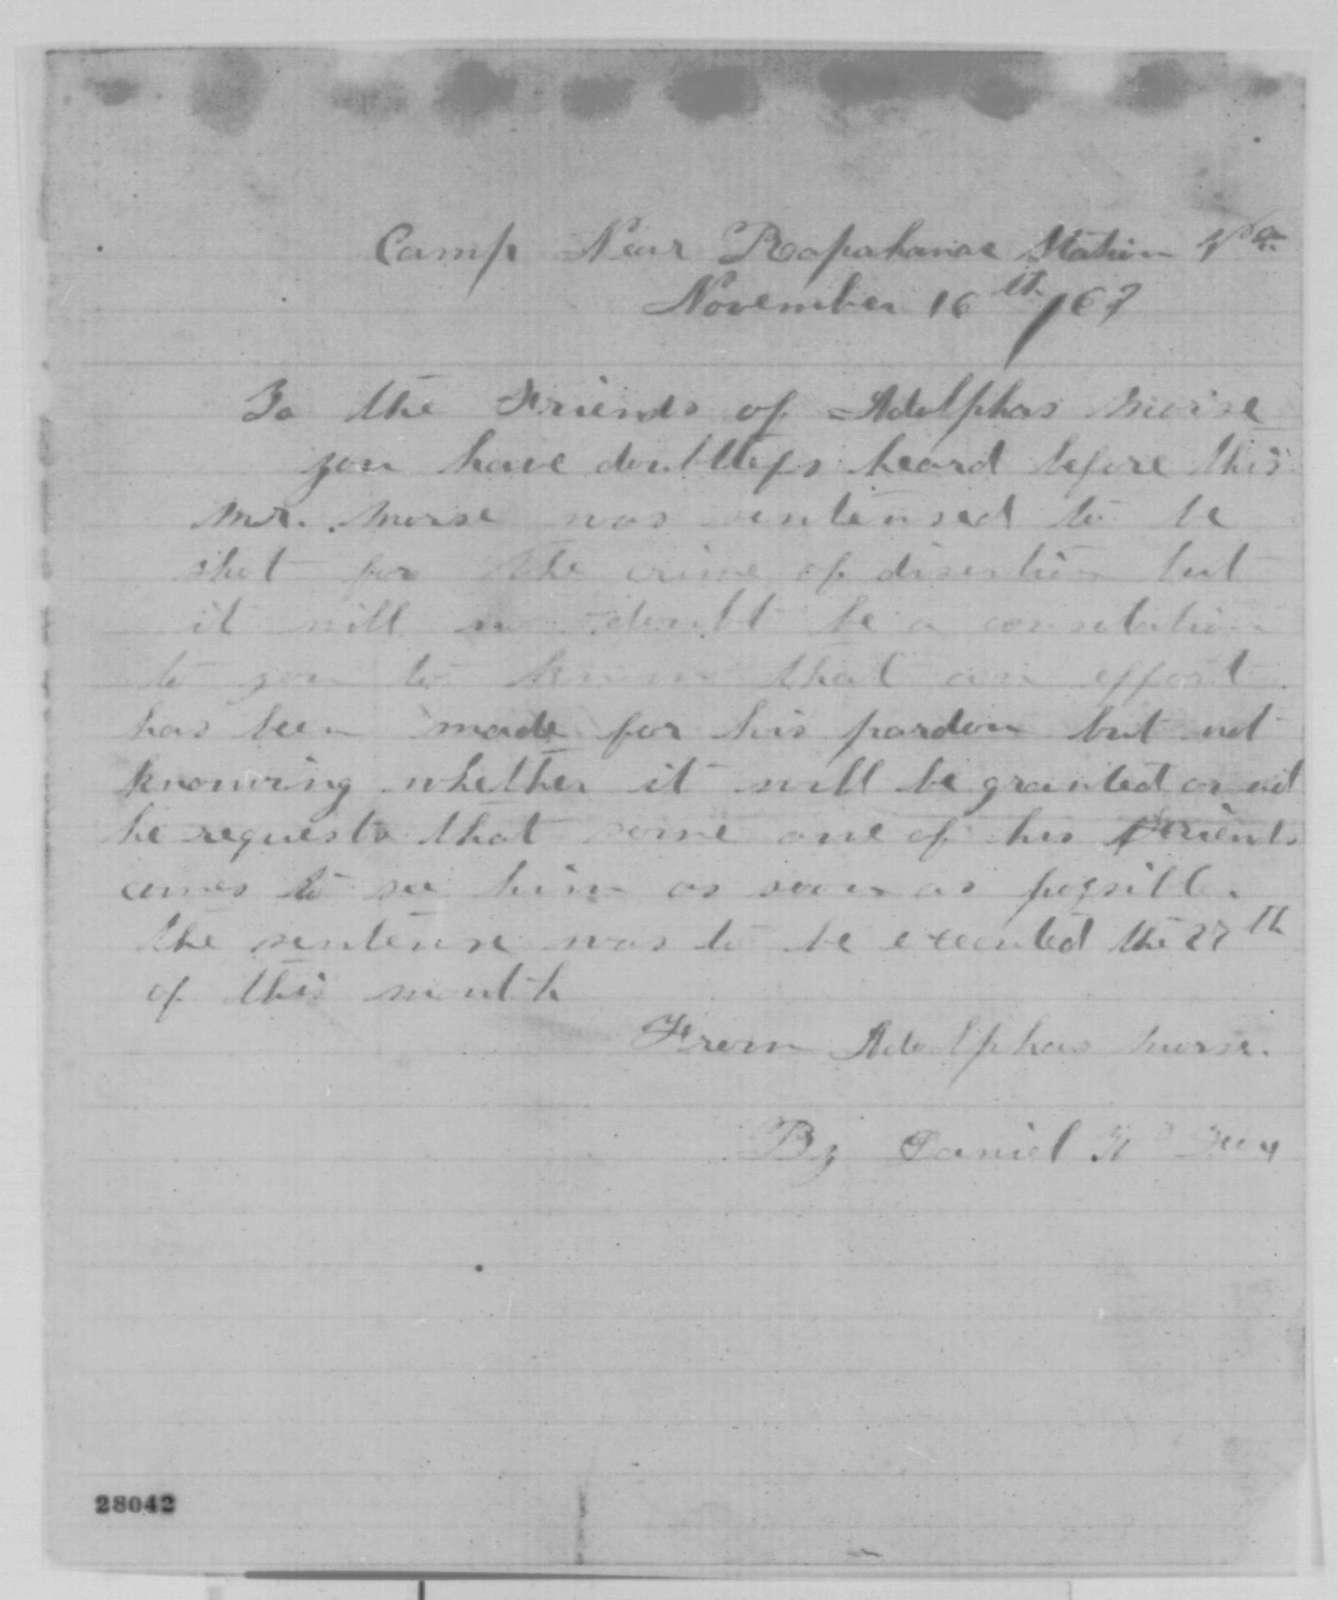 Daniel W. Fox to The Friends of Adolphus Morse, Monday, November 16, 1863  (Pardon for Morse)